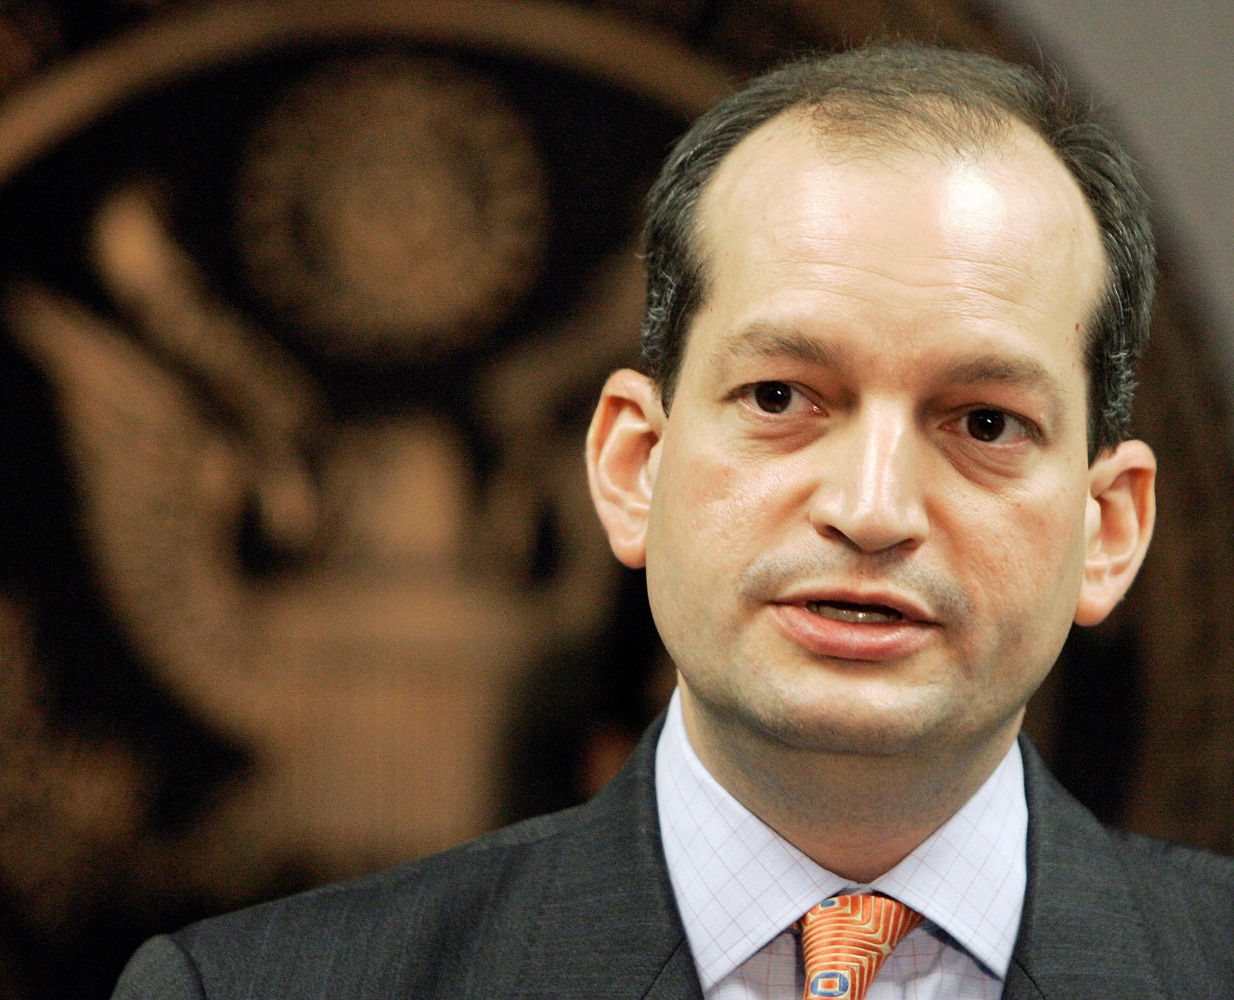 Trump to Announce Alexander Acosta as New Labor Secretary ...